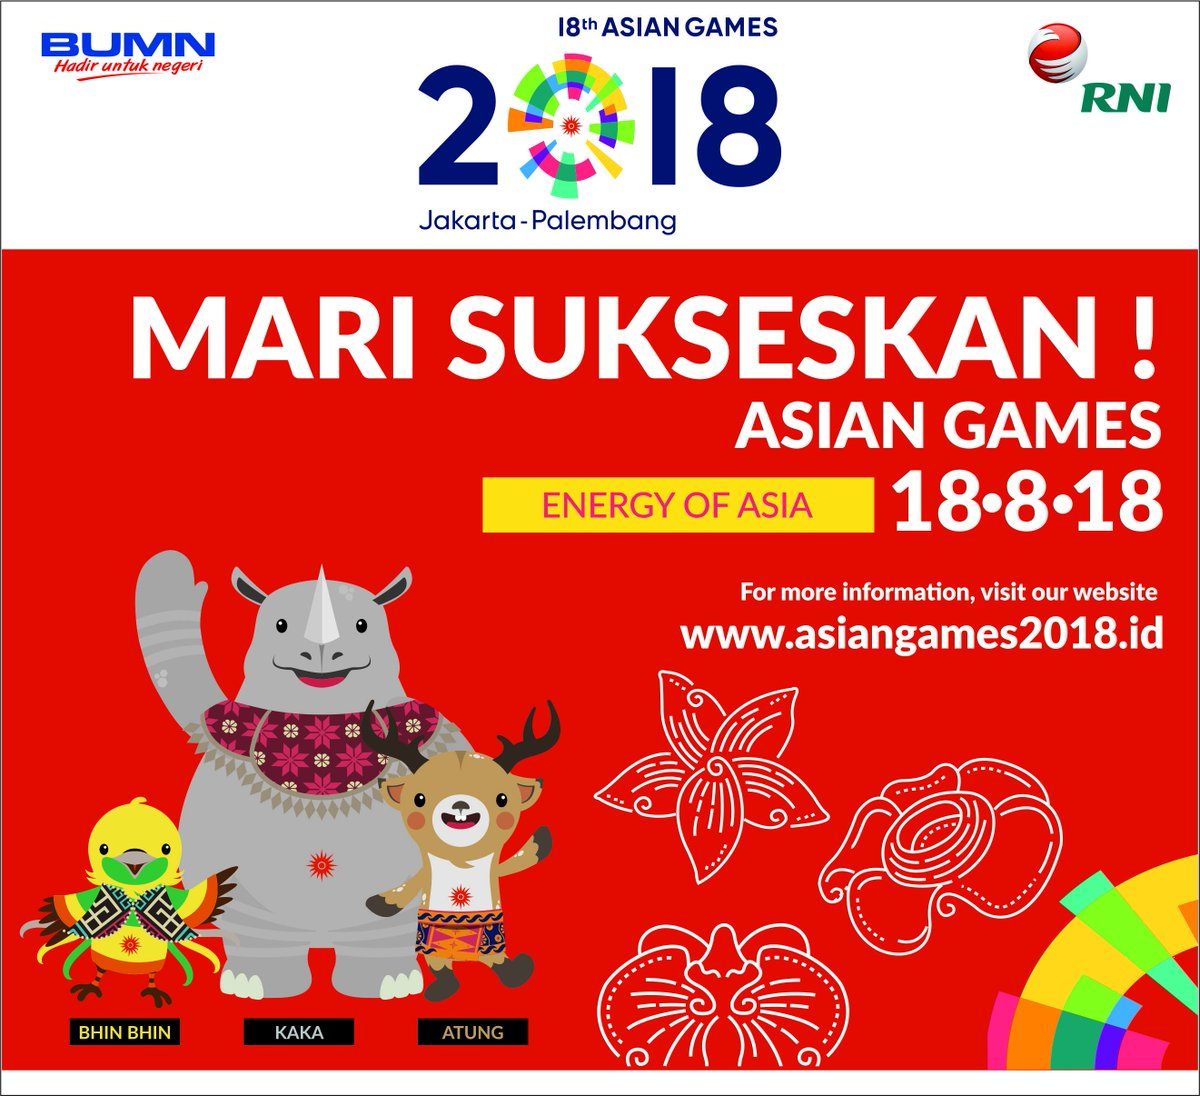 DTPo7WUU0AEa3m8 - Asian Games Tanggal